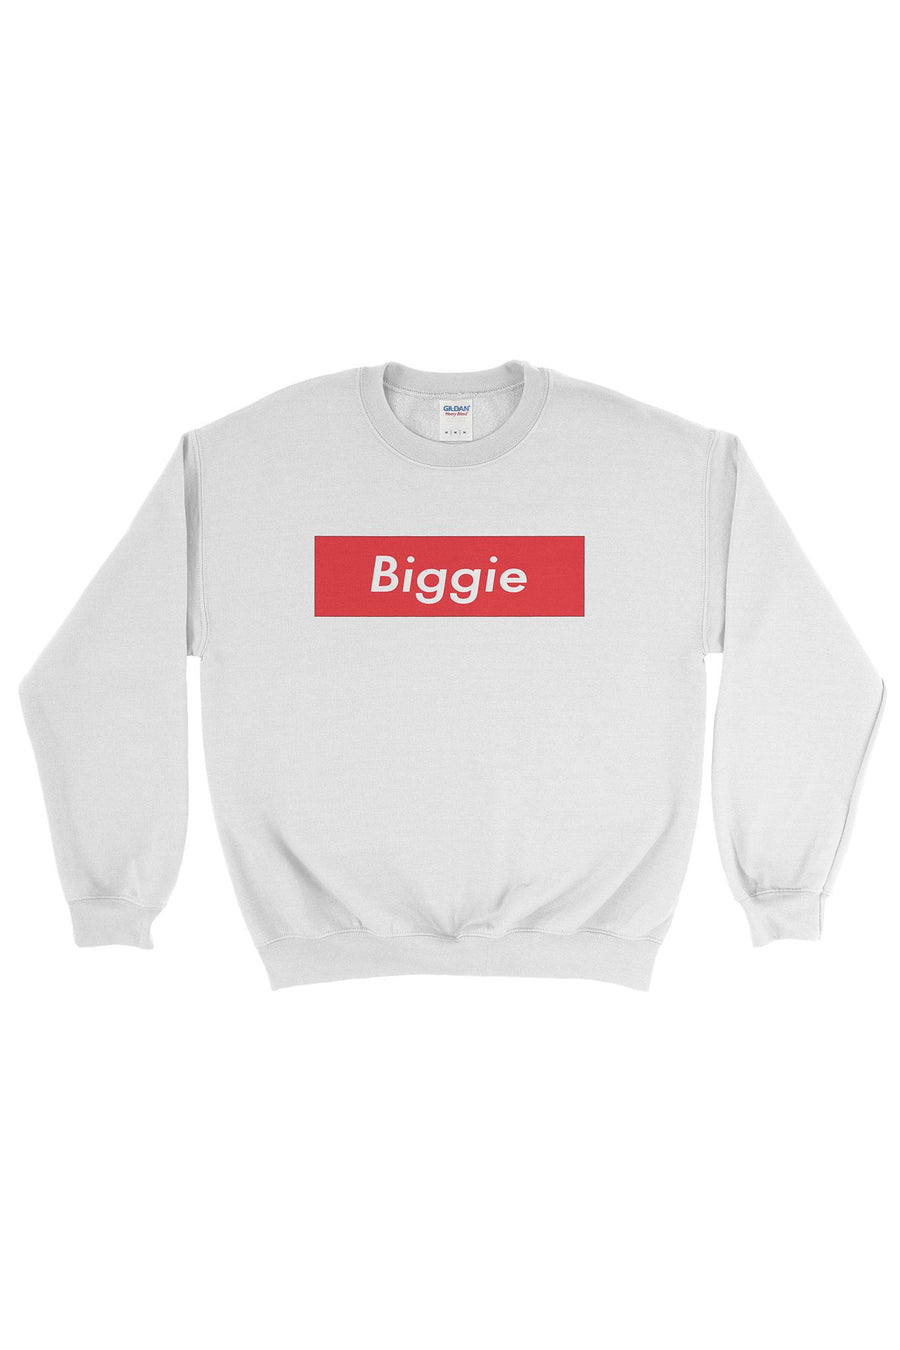 Big Little Supreme Sweatshirt- Gildan Crewneck